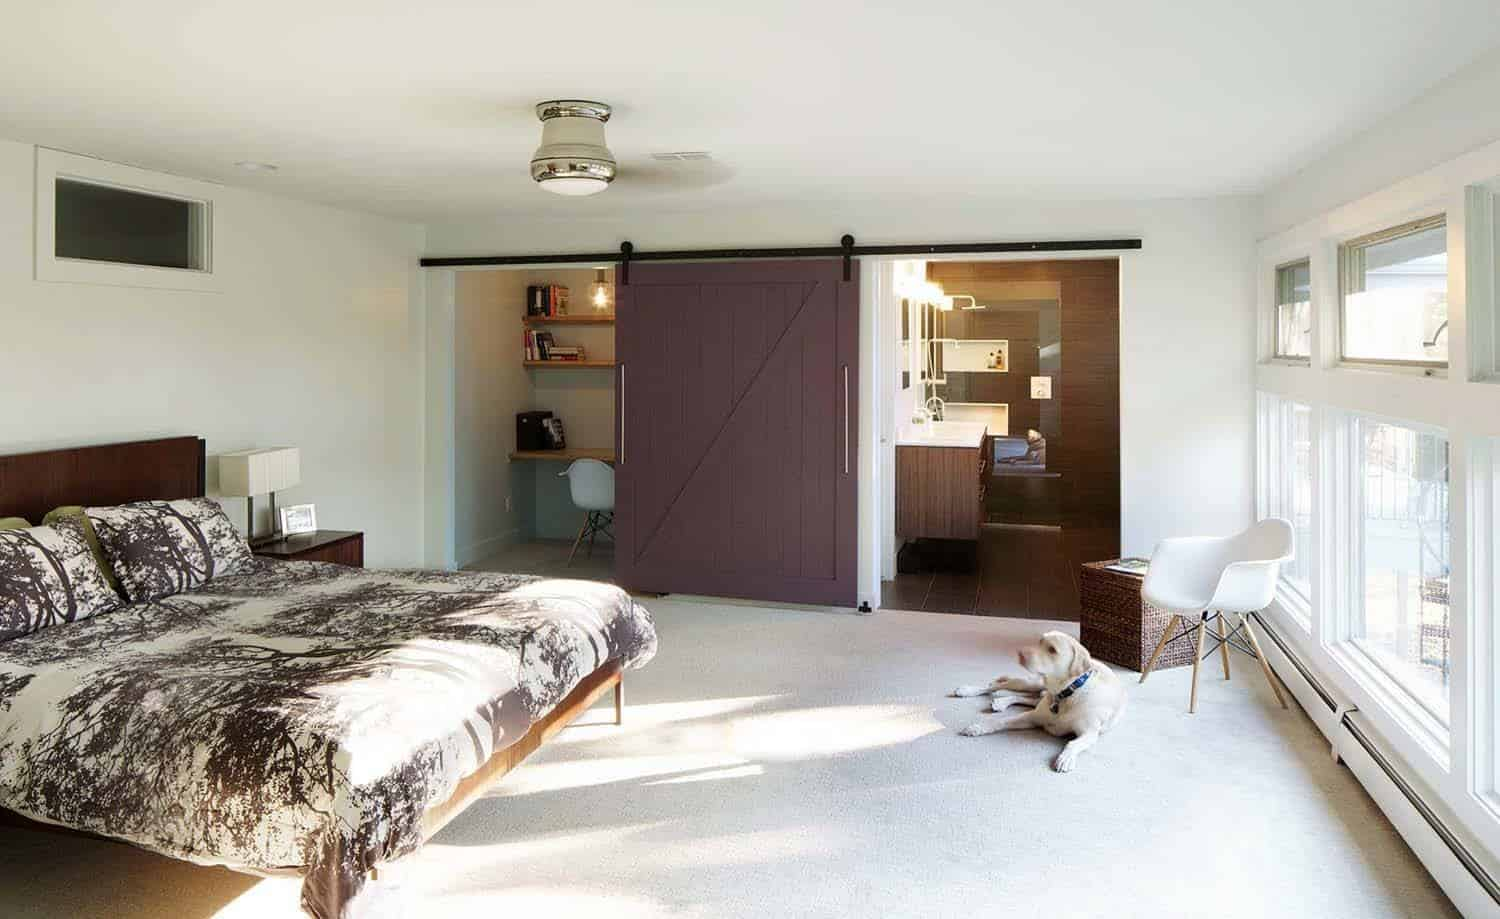 bedroom mid decorating materials ideas century the natural modern midcentury in